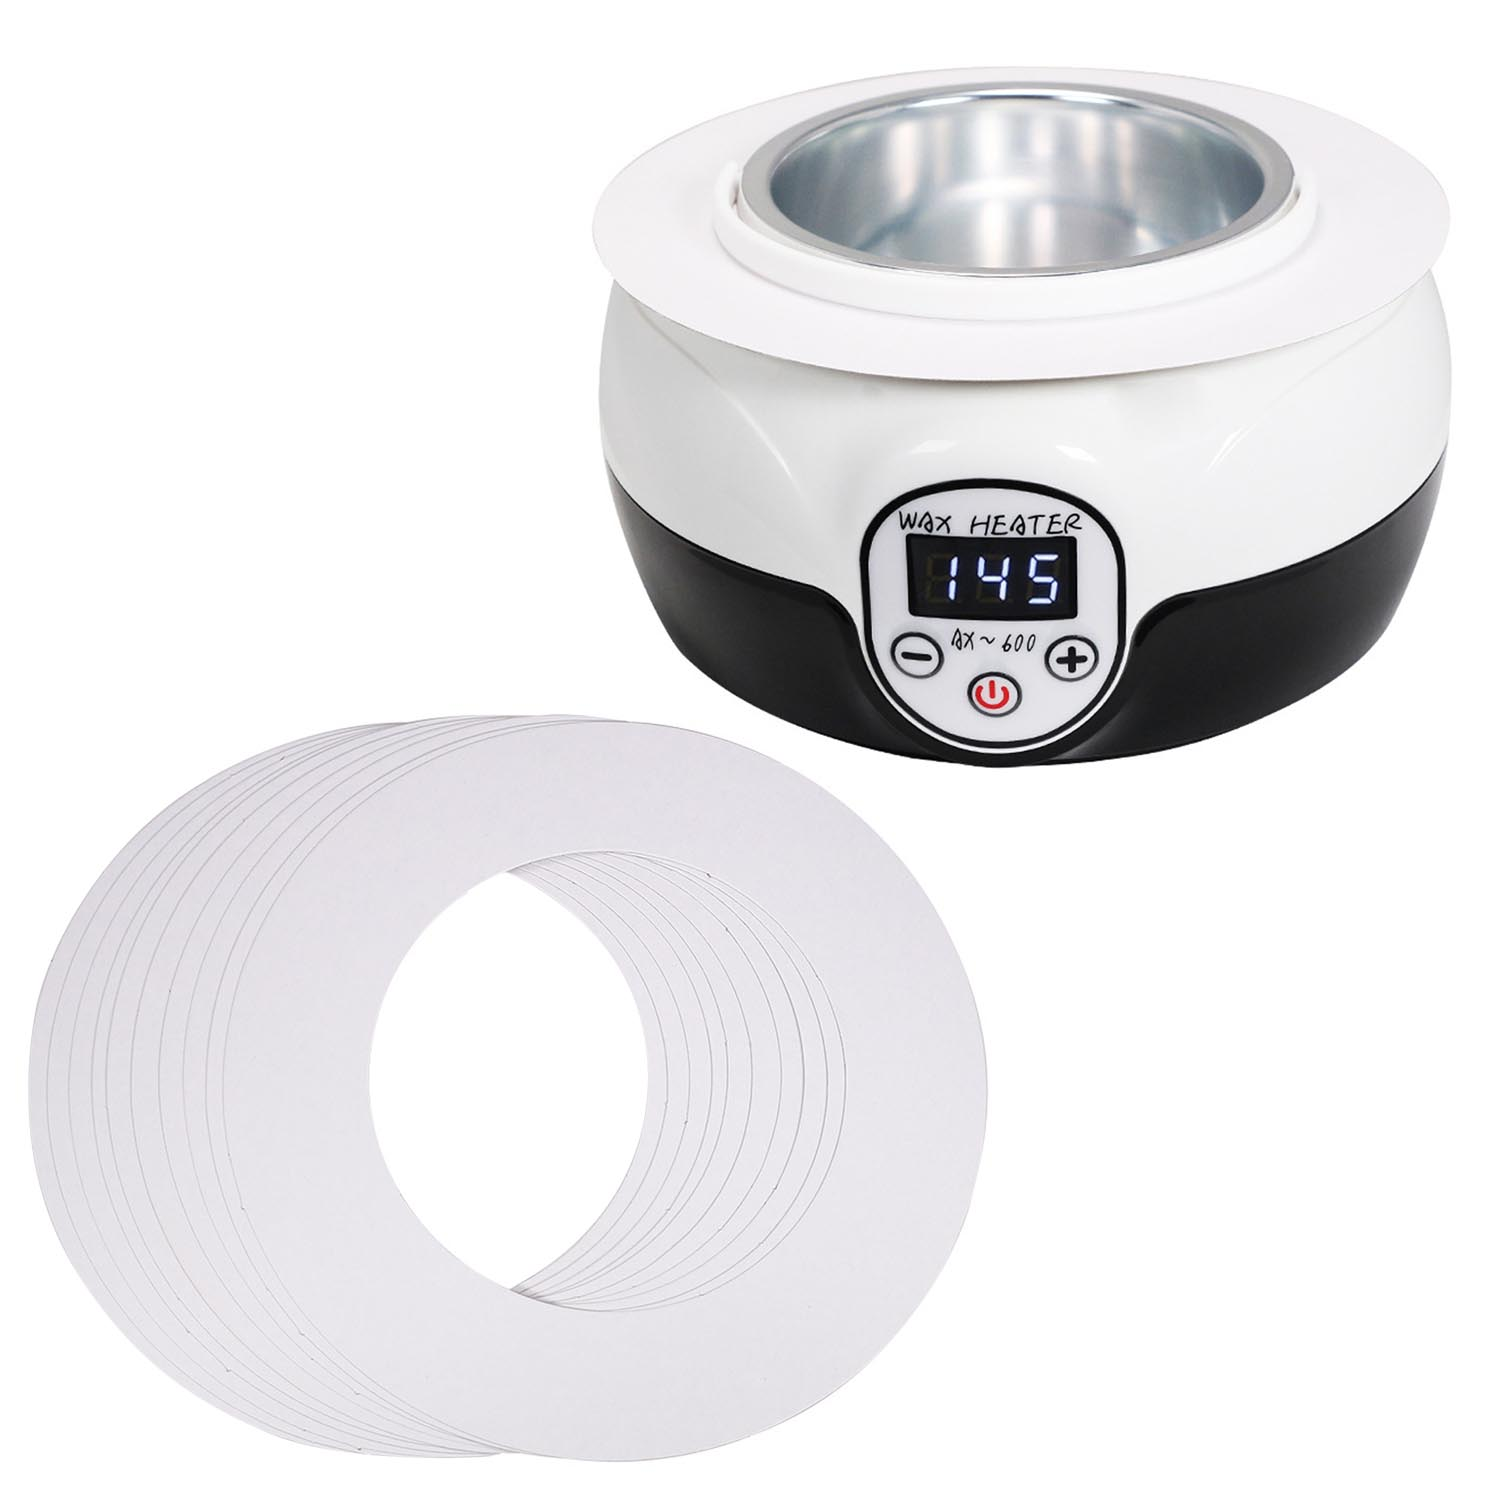 50pcs Disposable Wax Warmer Collars Body Hair Removal Accessories Wax Warmer Clean Pot Protective Collar Ring For 14oz Wax Can